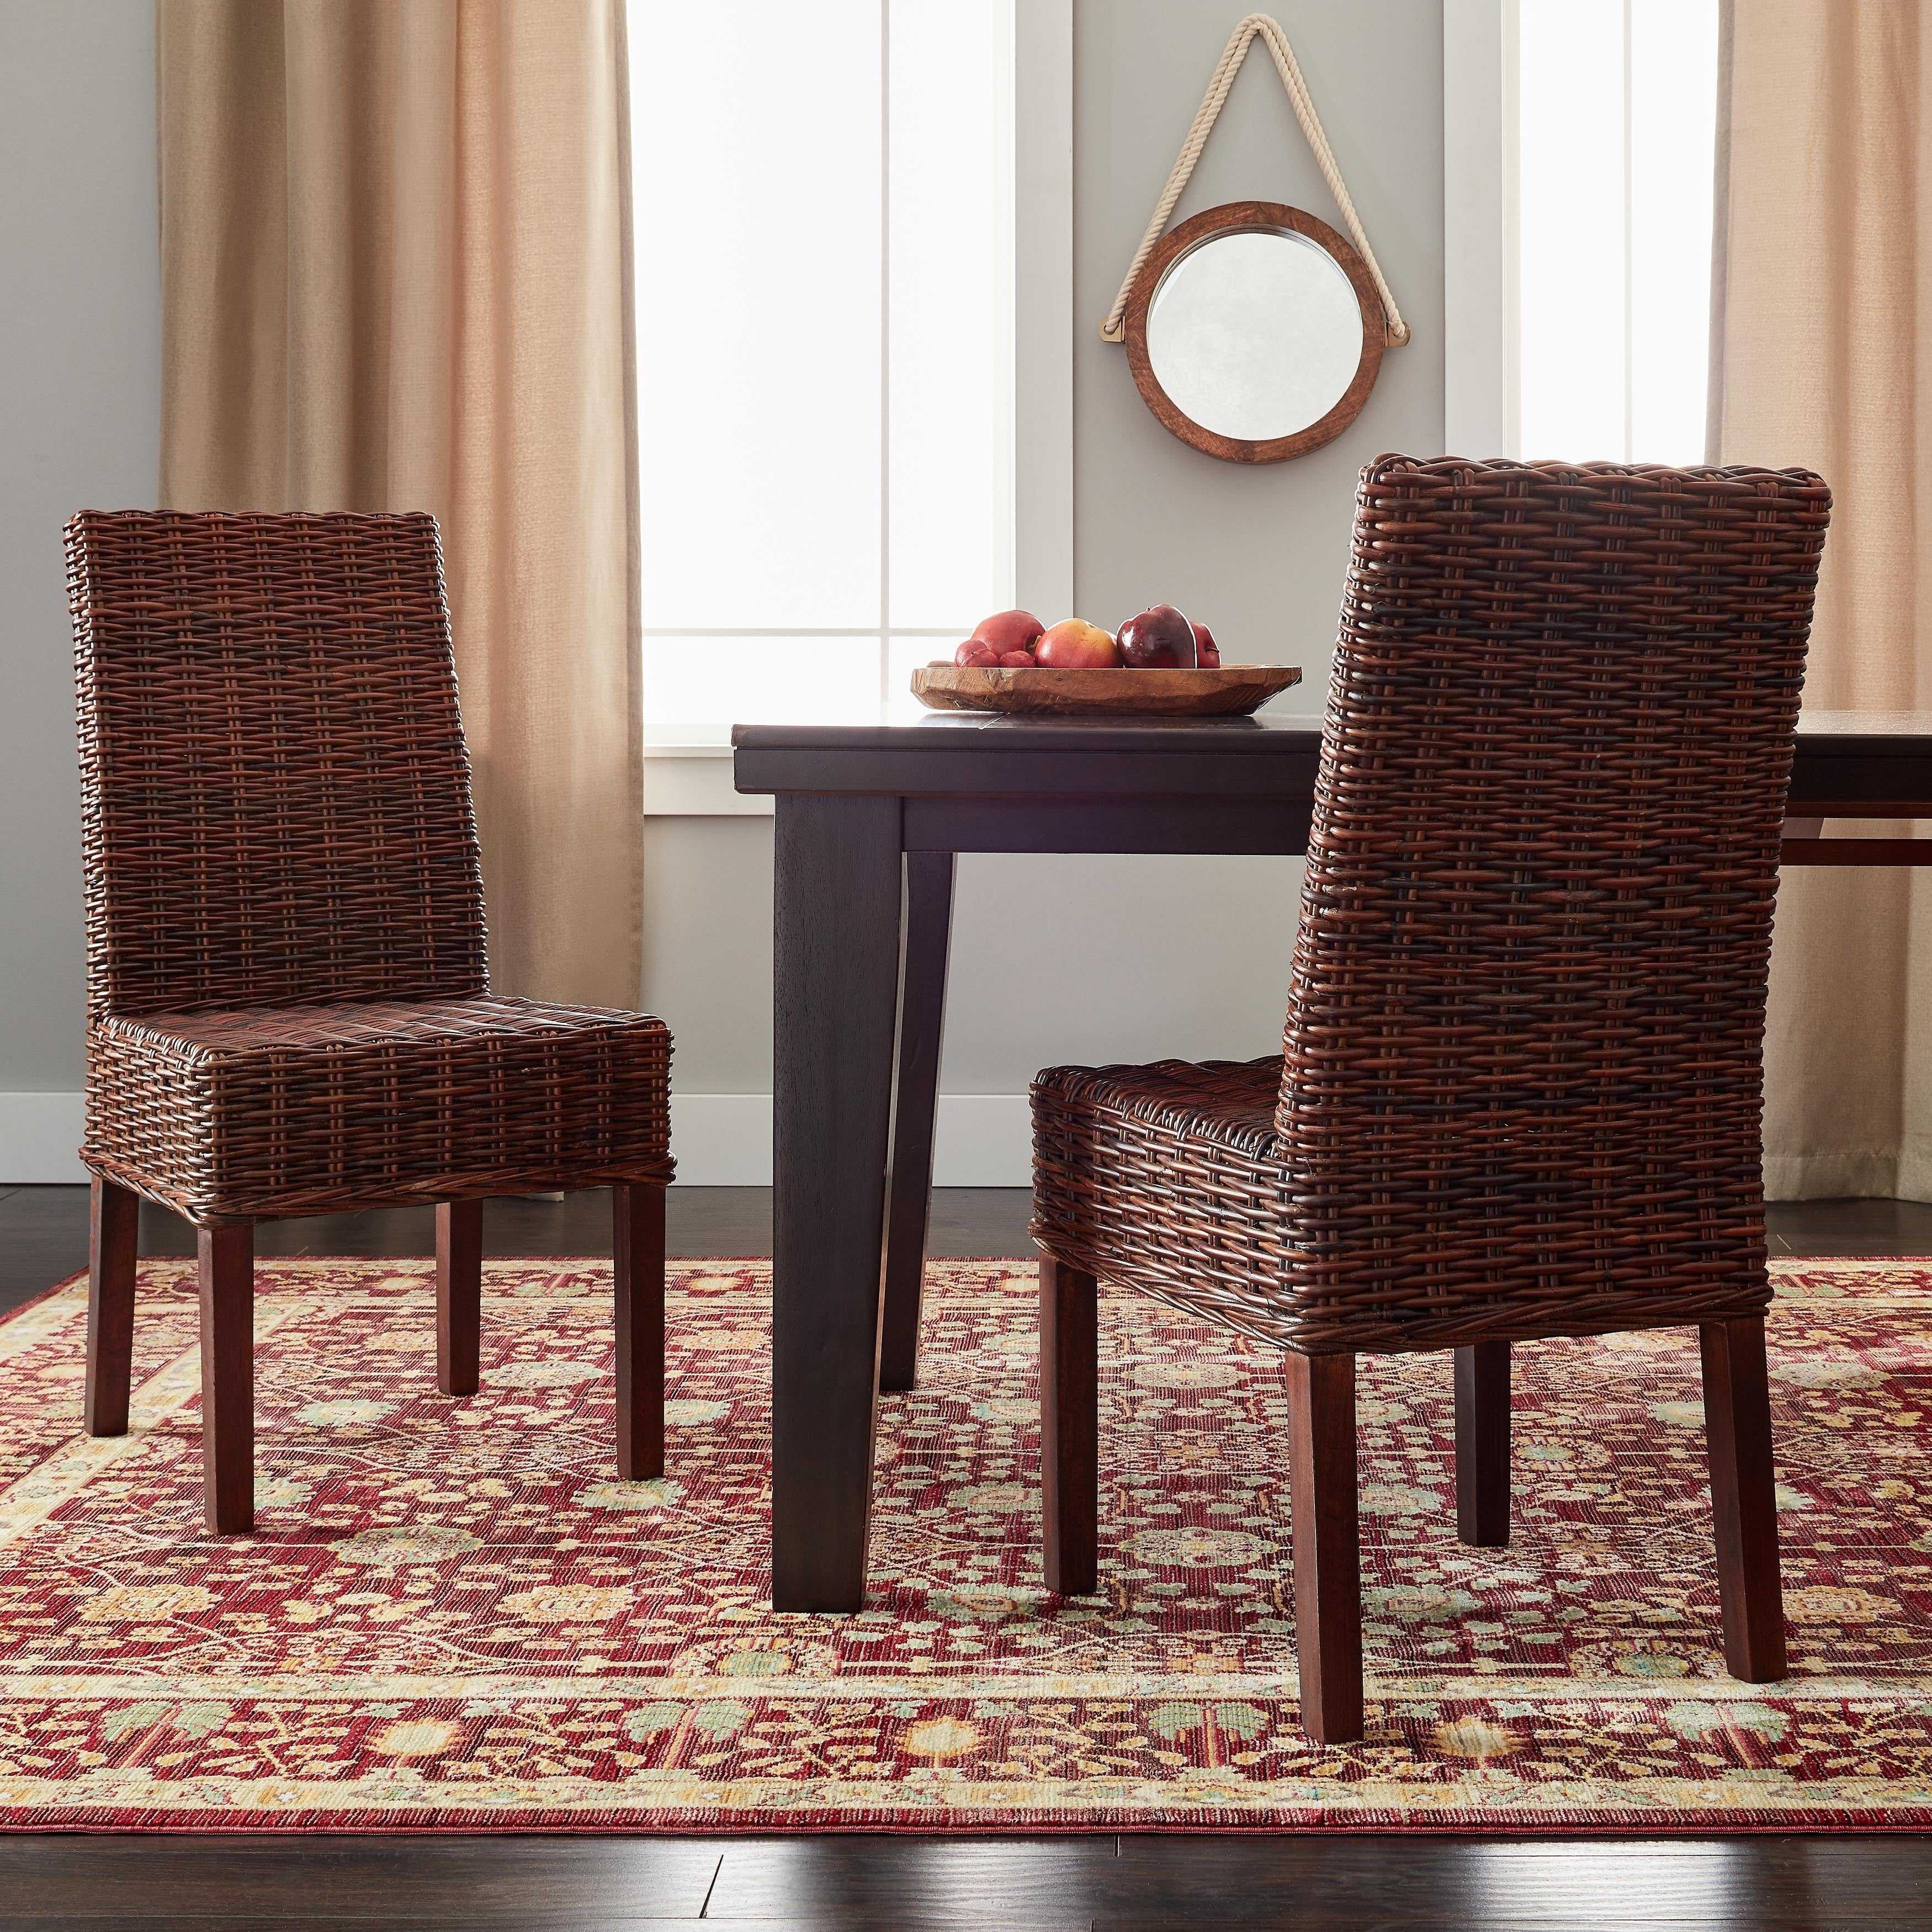 Details about safavieh woven wicker dining st thomas light brown dining chairs set of 2